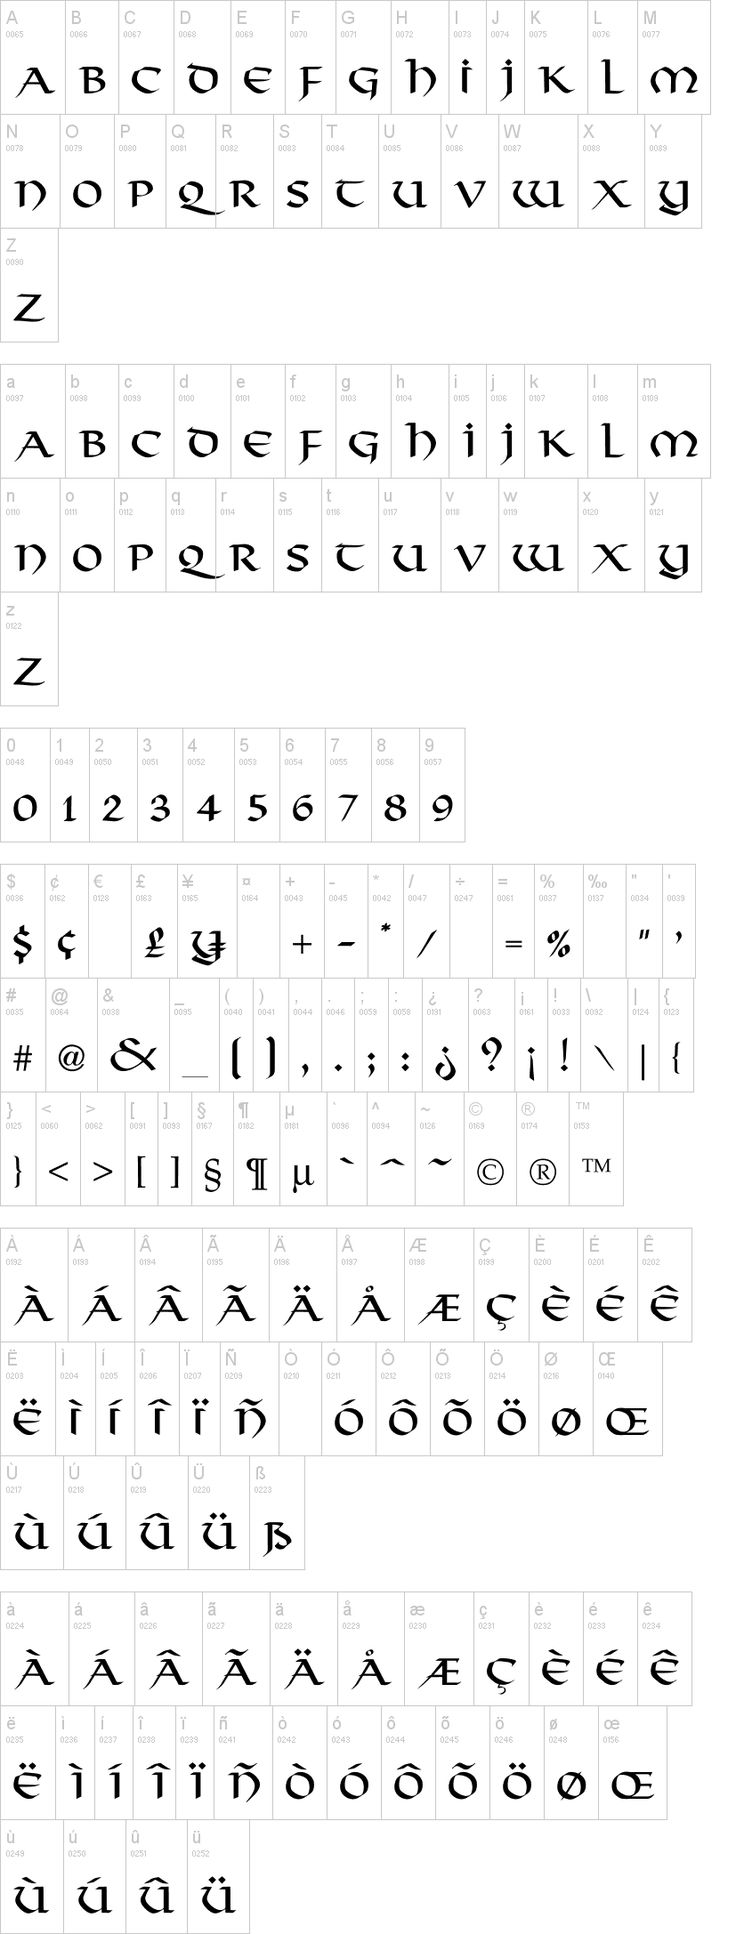 how to download fonts from dafont on ipad